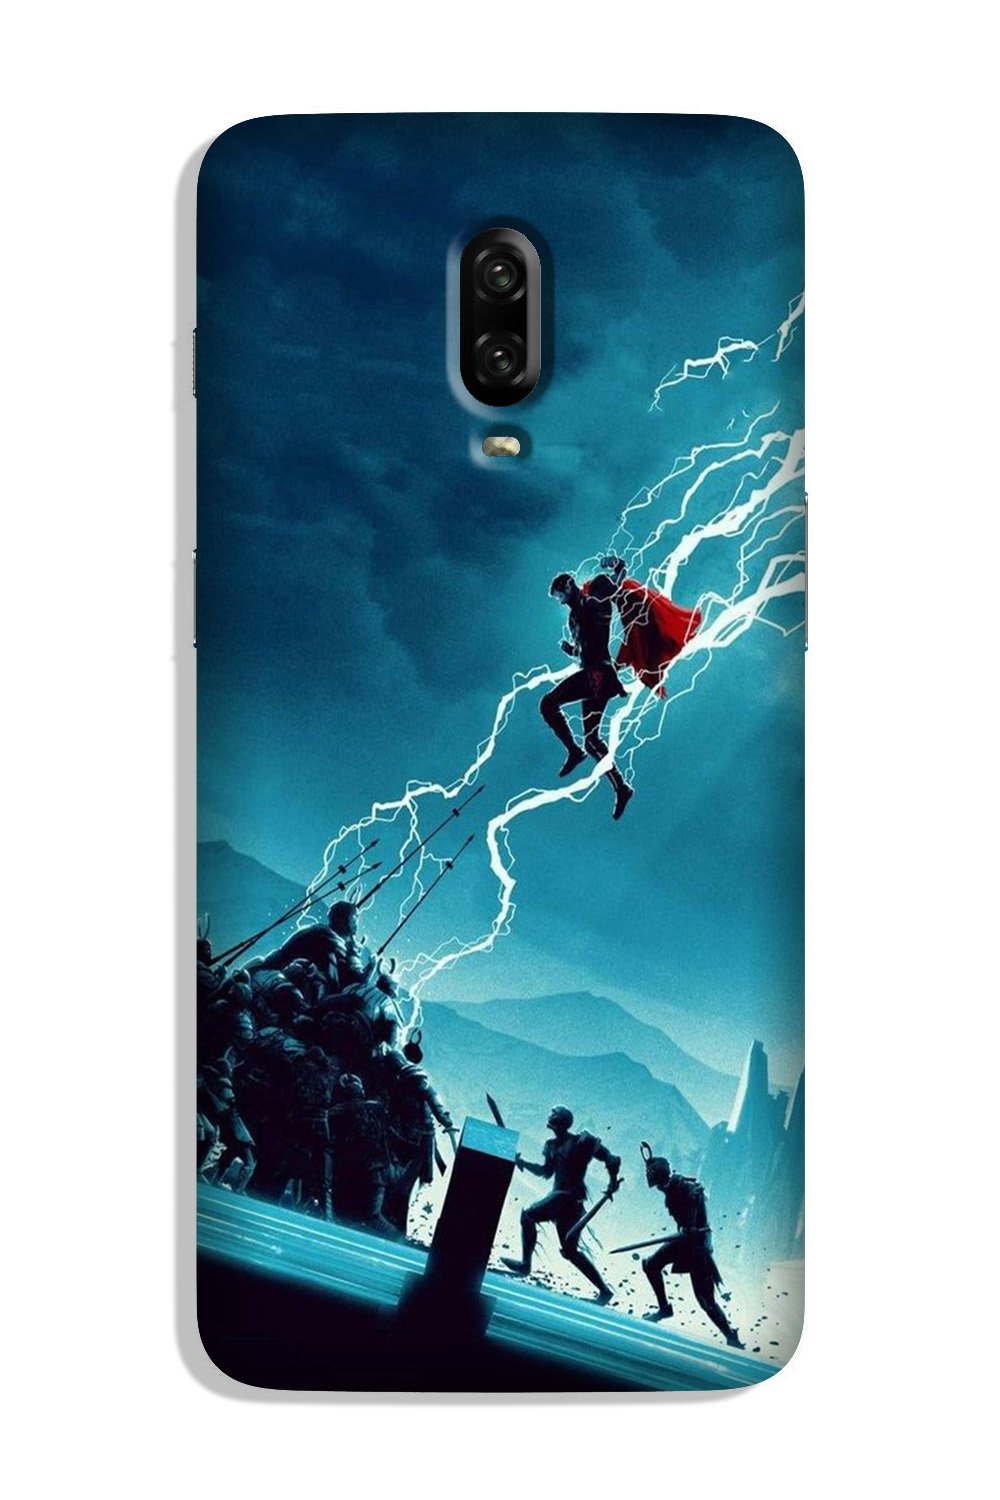 Thor Avengers Case for OnePlus 6T (Design No. 243)